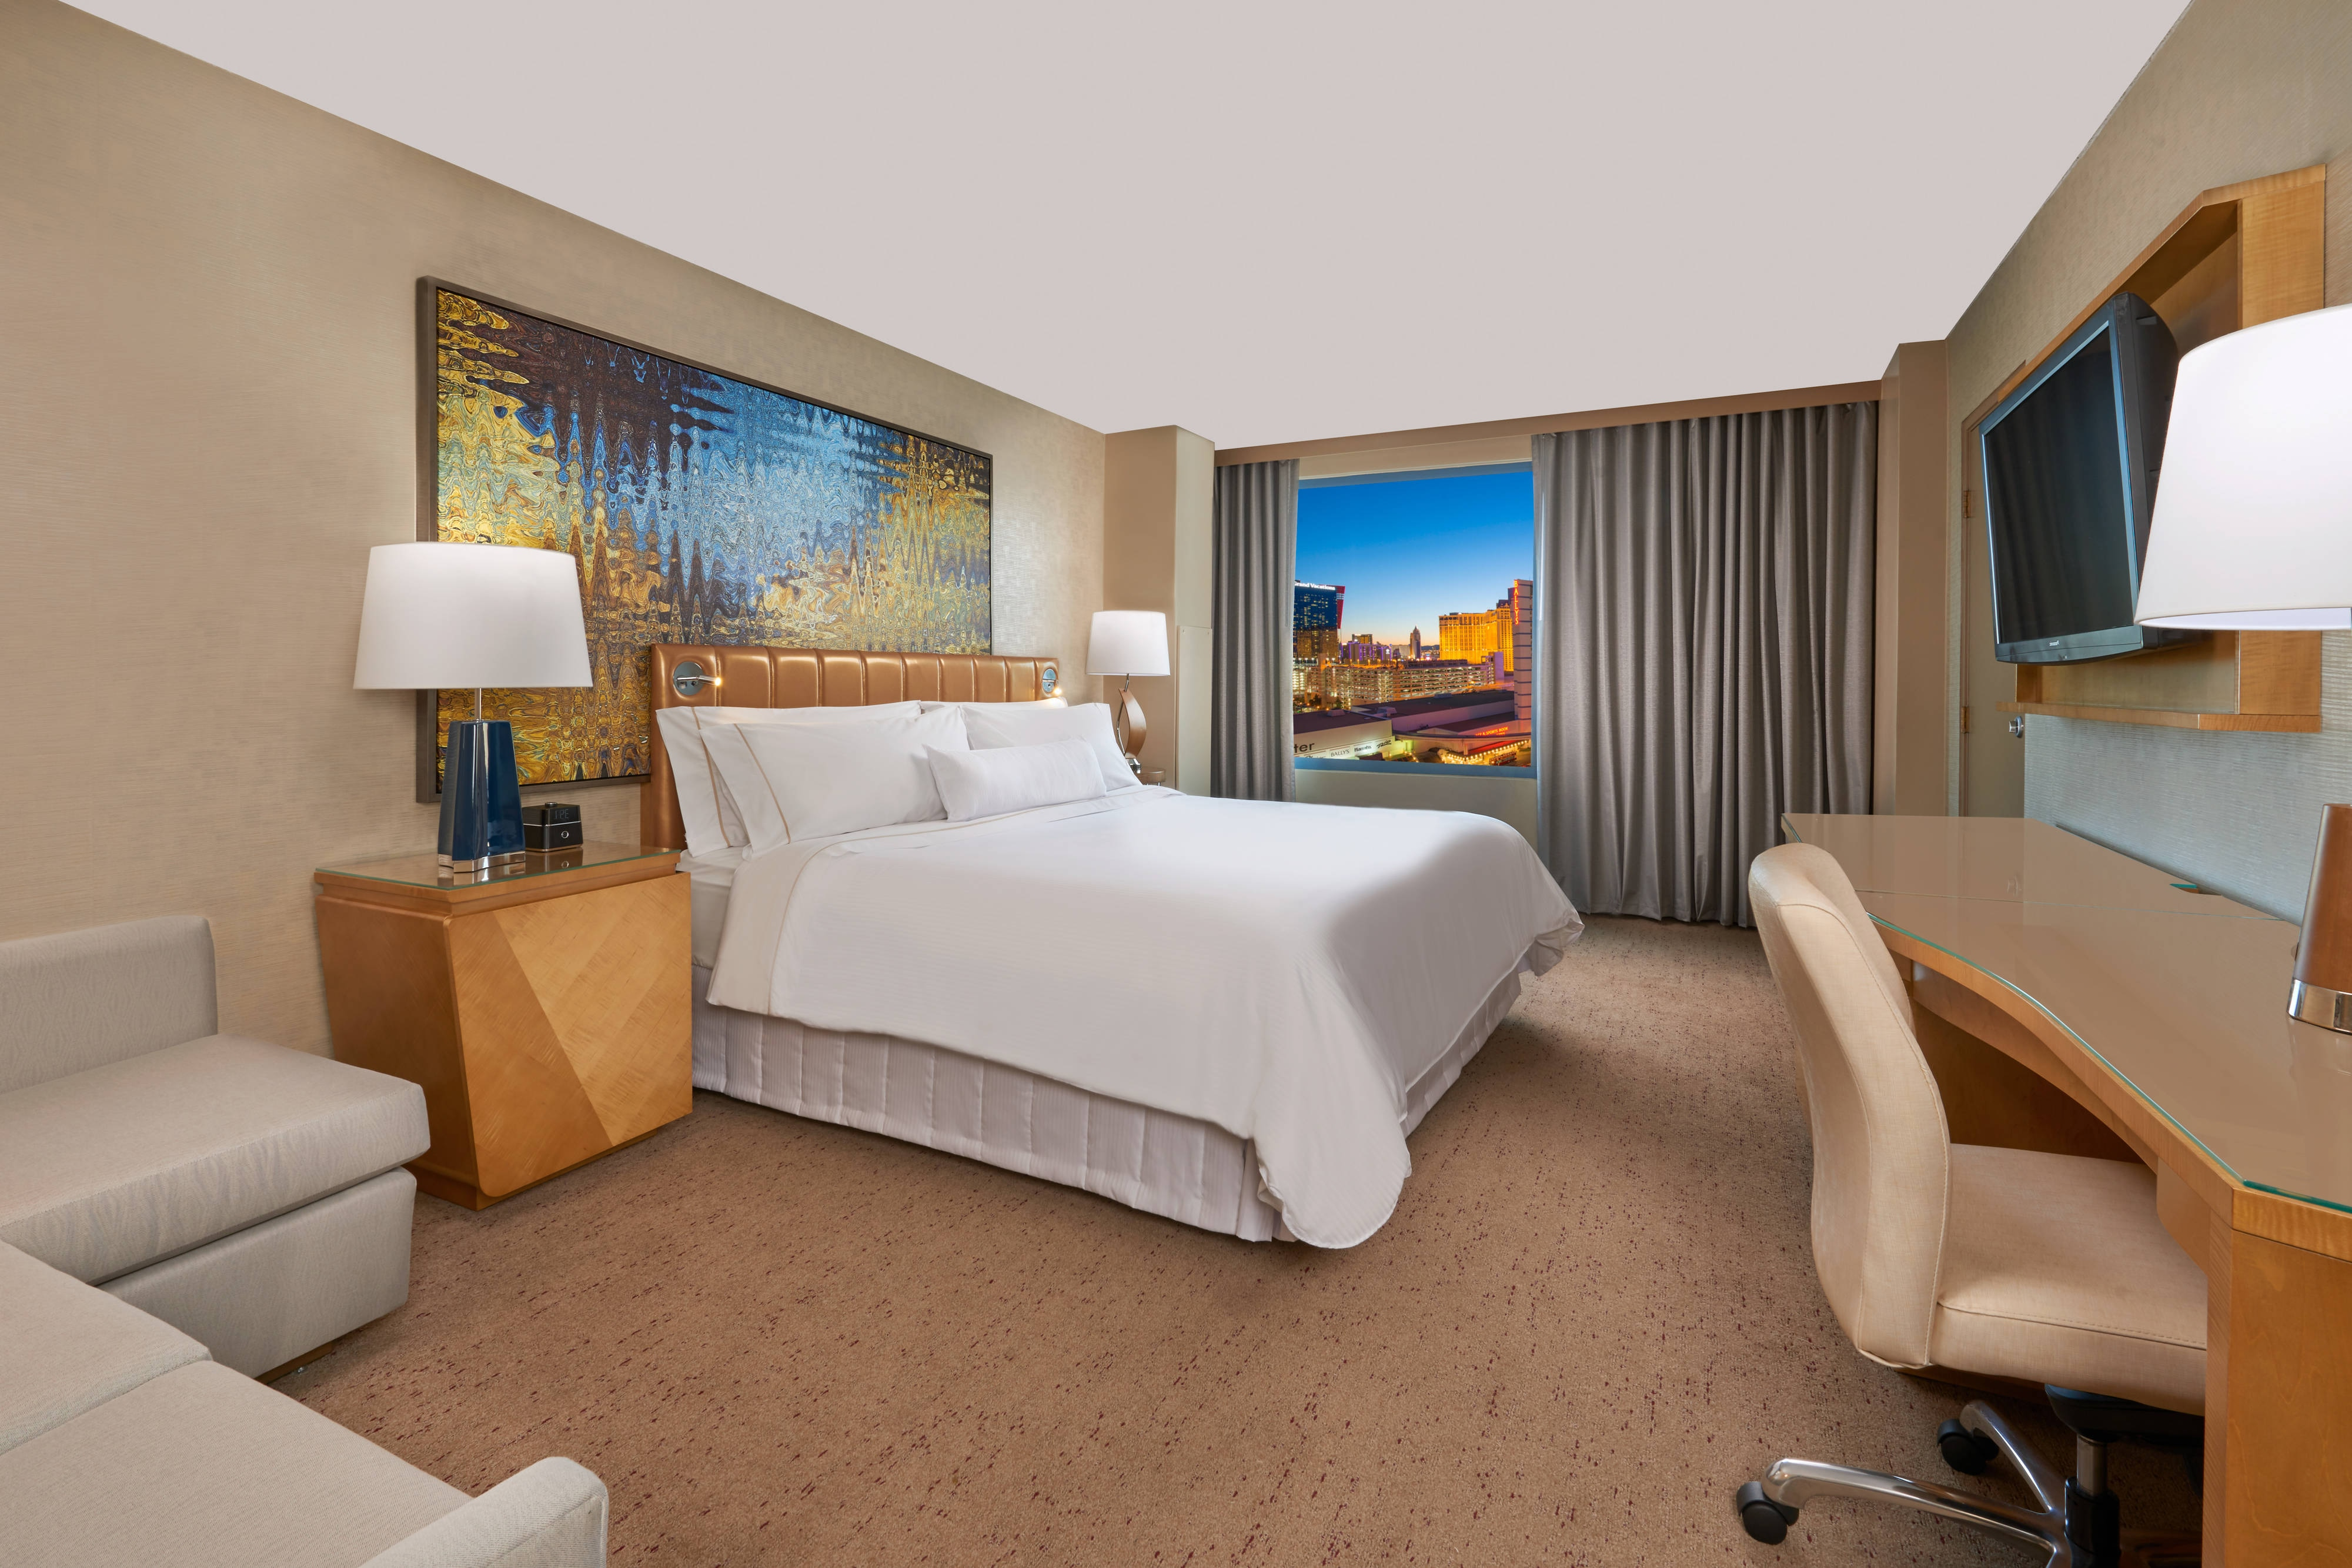 Deluxe or Premium City View King Guest Room